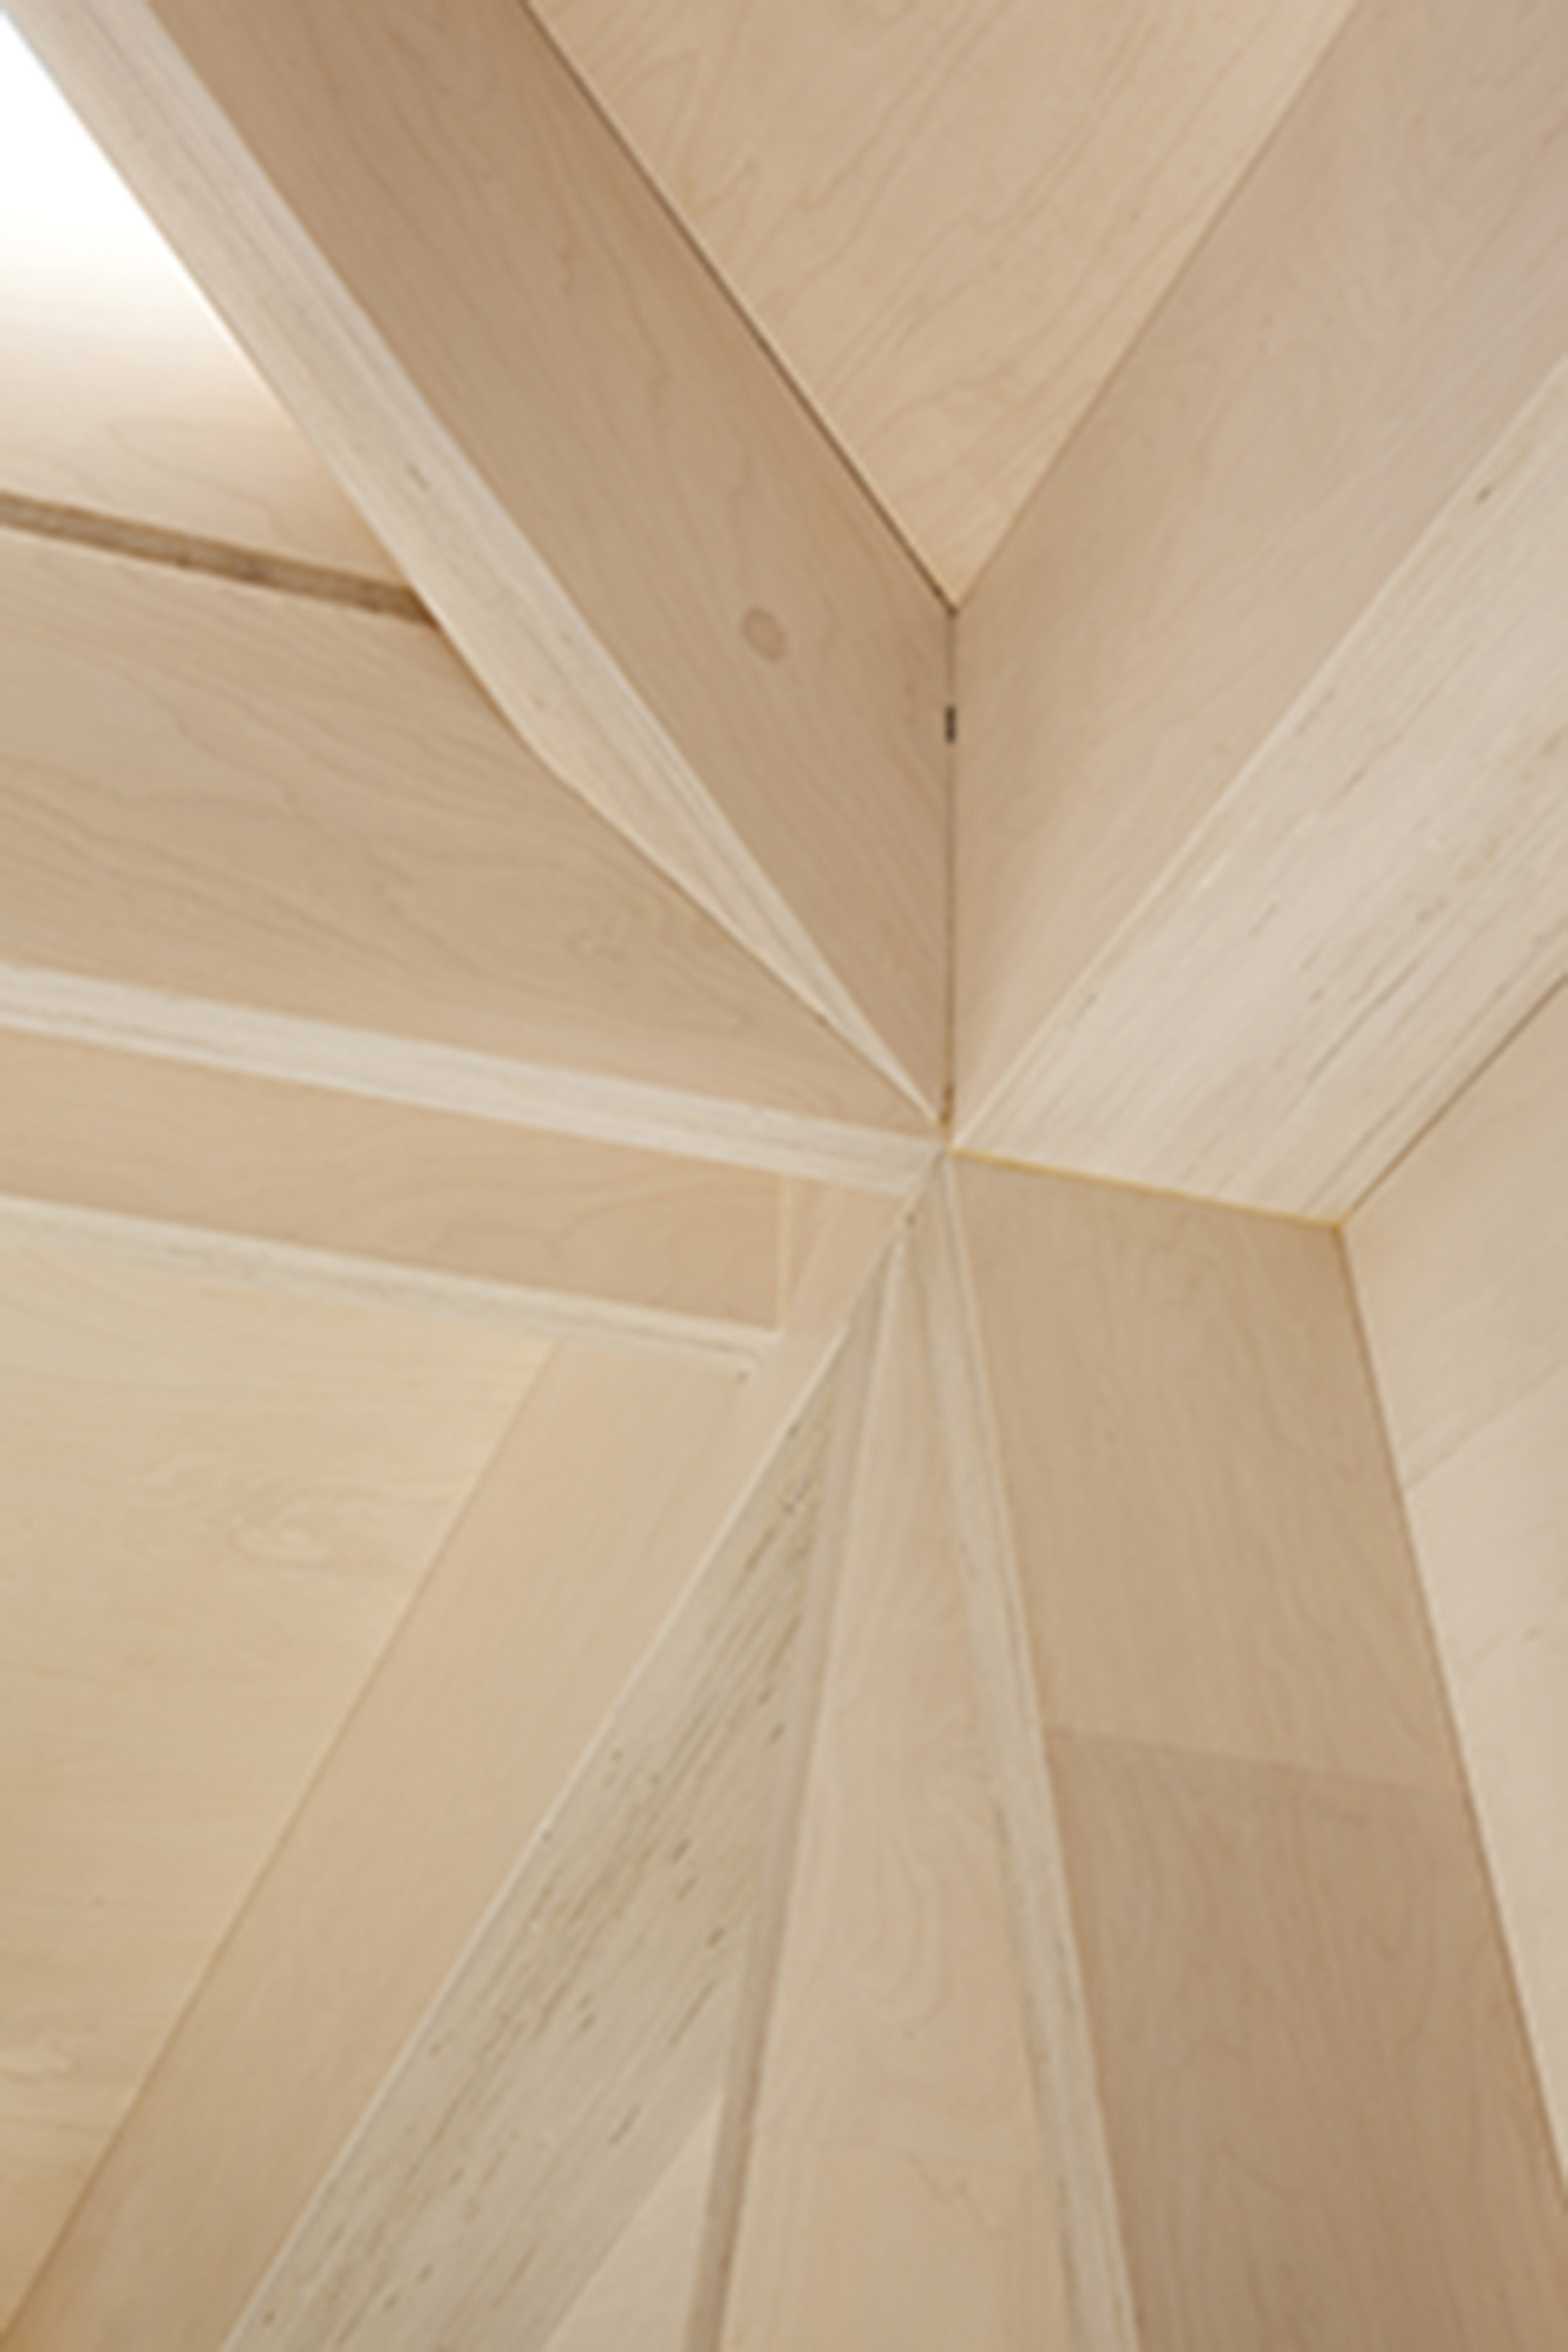 Scale of PLY / NOJI Architects (11)